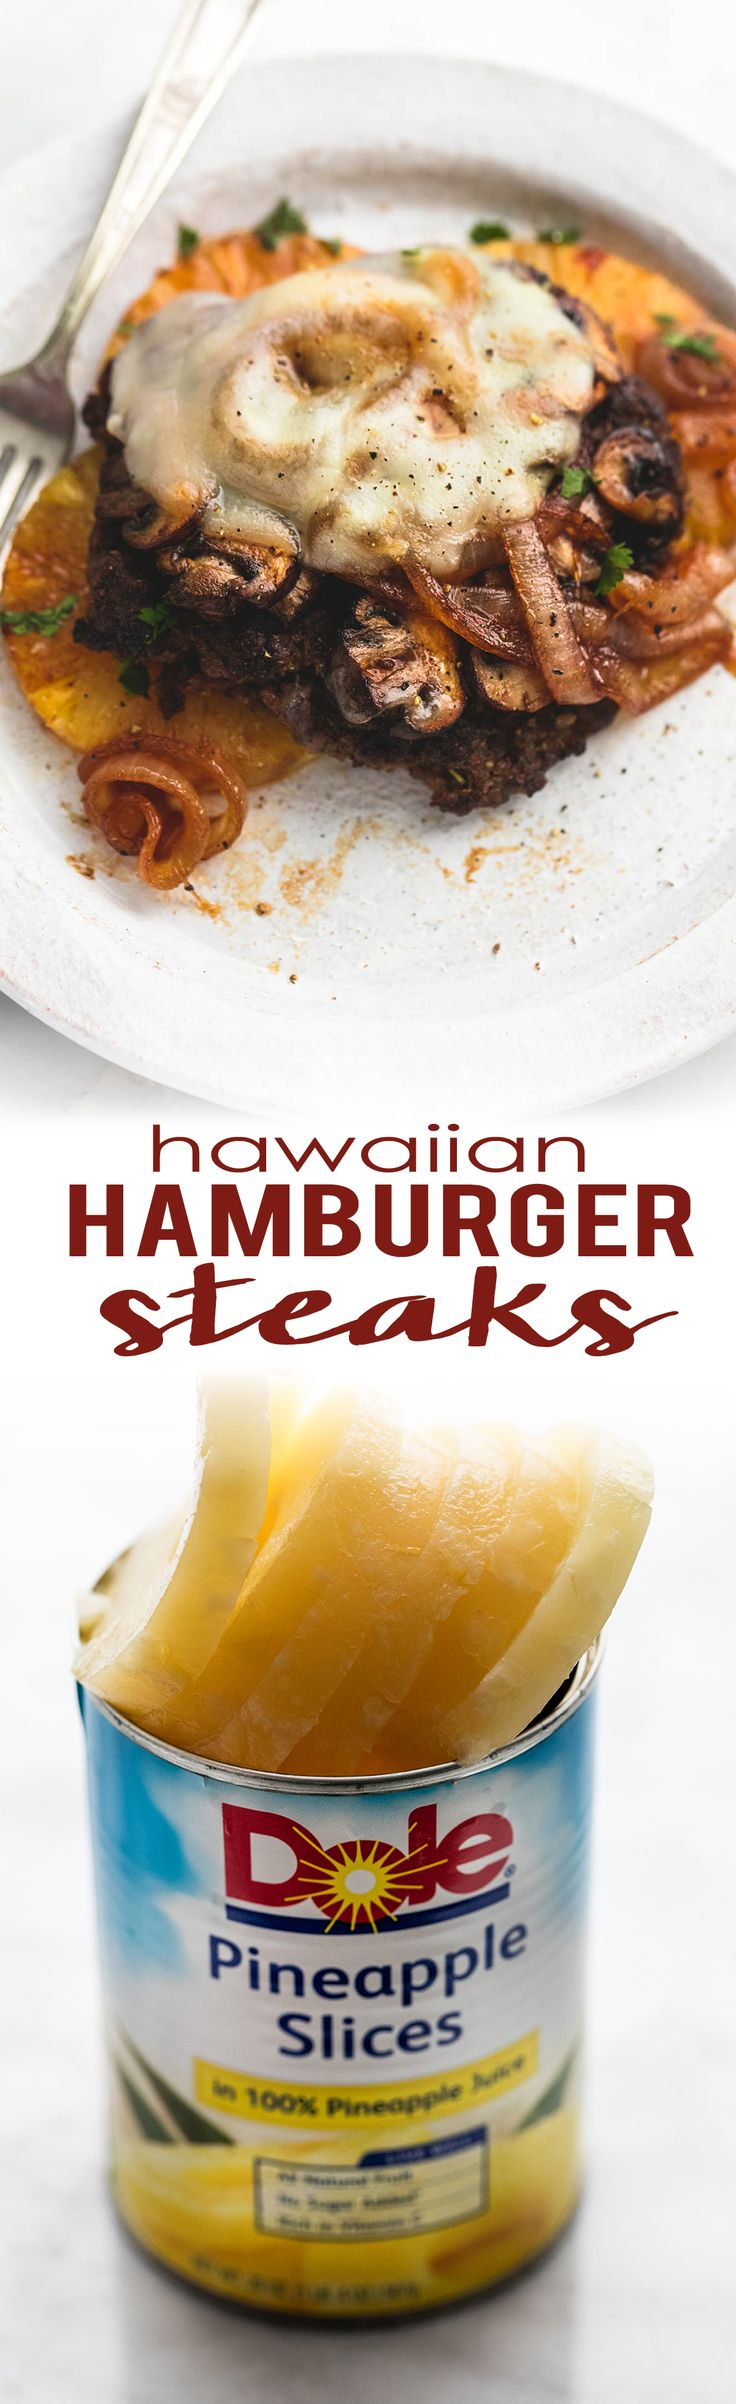 Easy 30 minute Hawaiian Hamburger Steaks with juicy pineapple and smothered in melty provolone cheese. | lecremedelacrumb.com